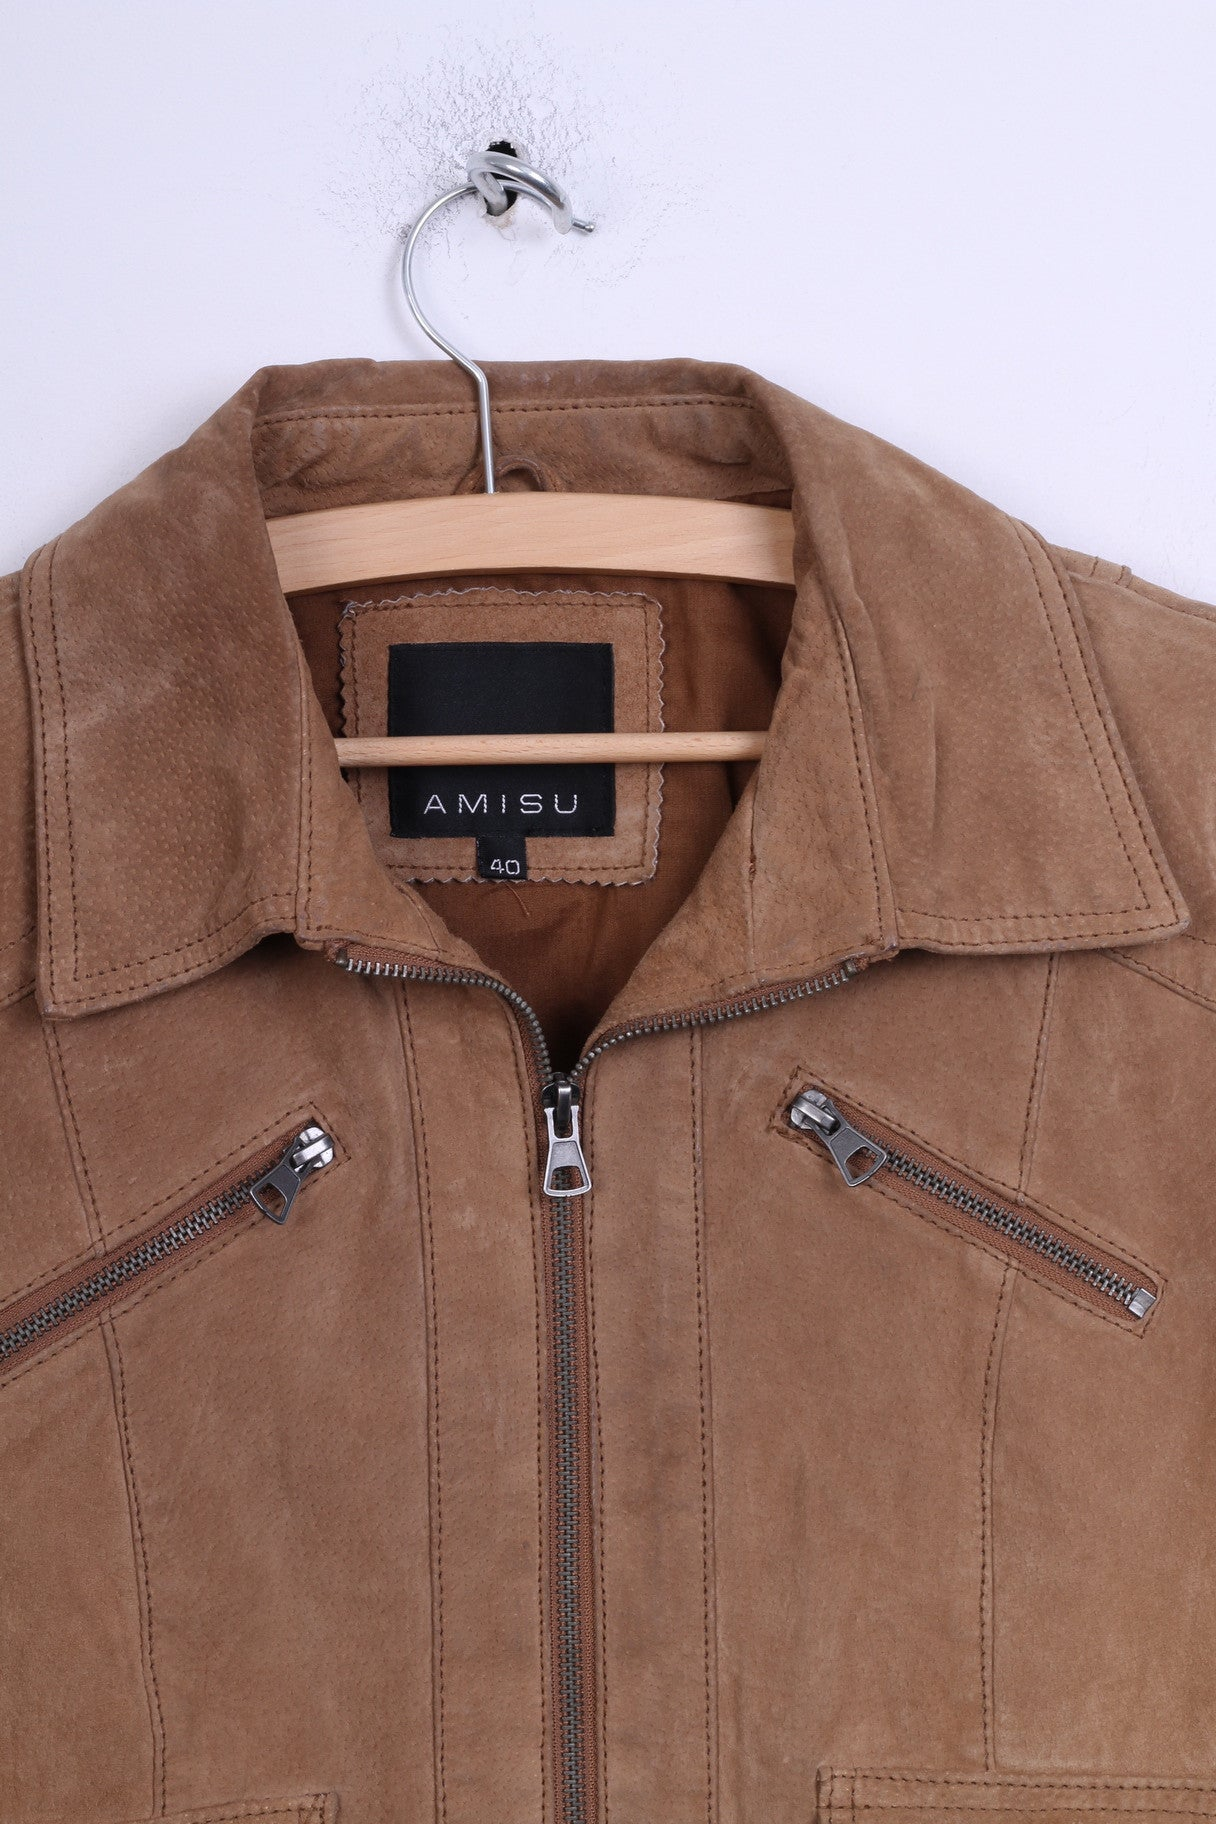 923c19ca AMISU Womens 40 L Jacket Ramones Leather Top New Yorker Zip Up Camel